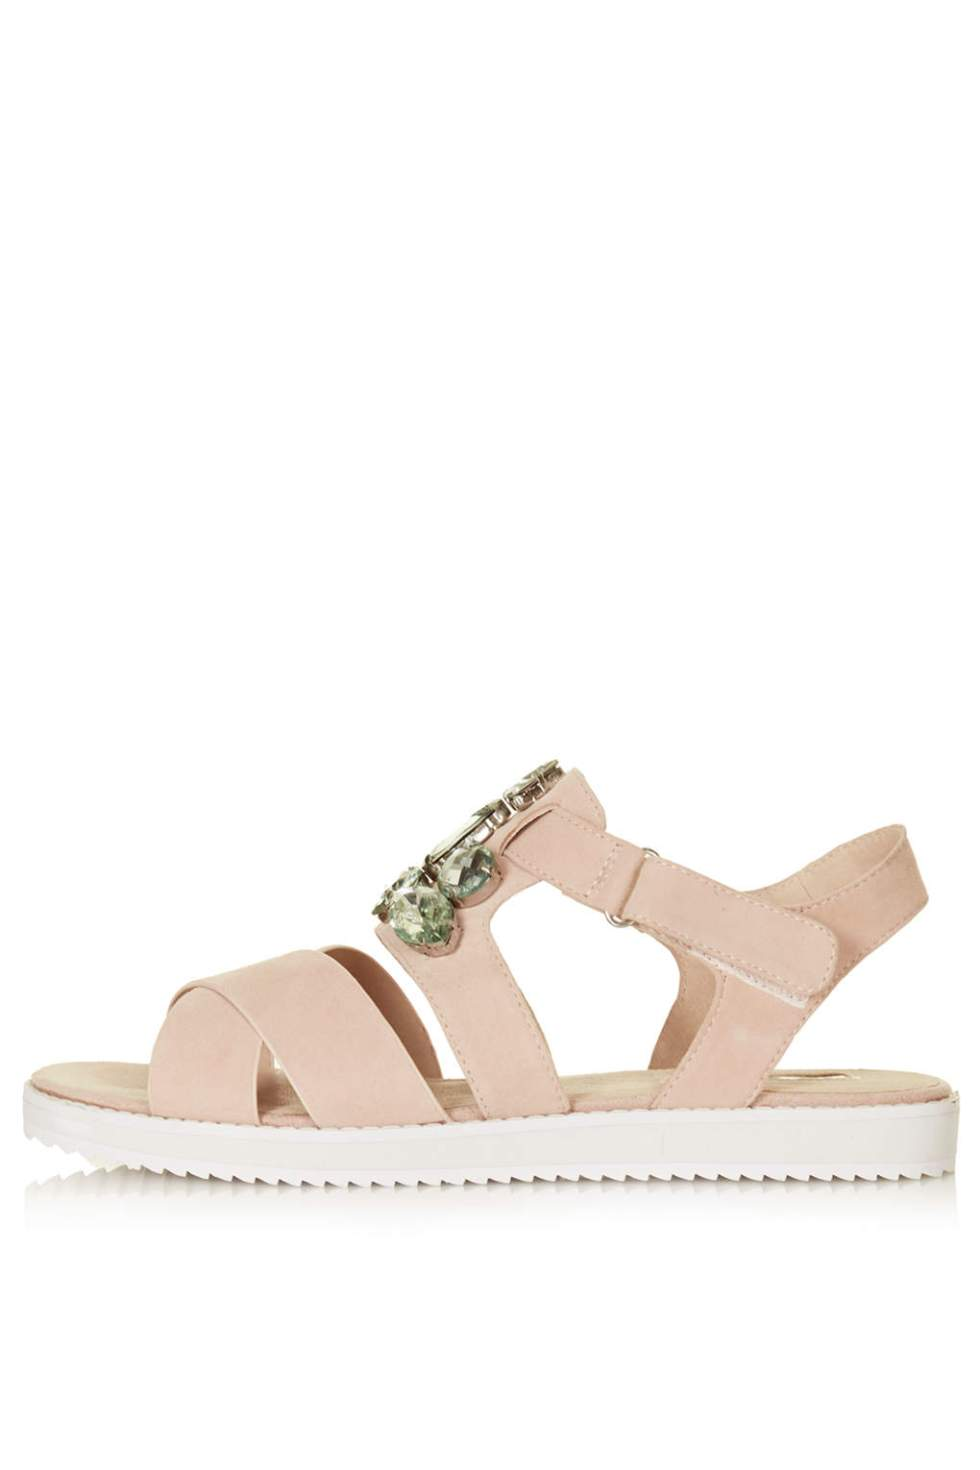 Florence, £52, topshop.com (BUY ME HERE!)